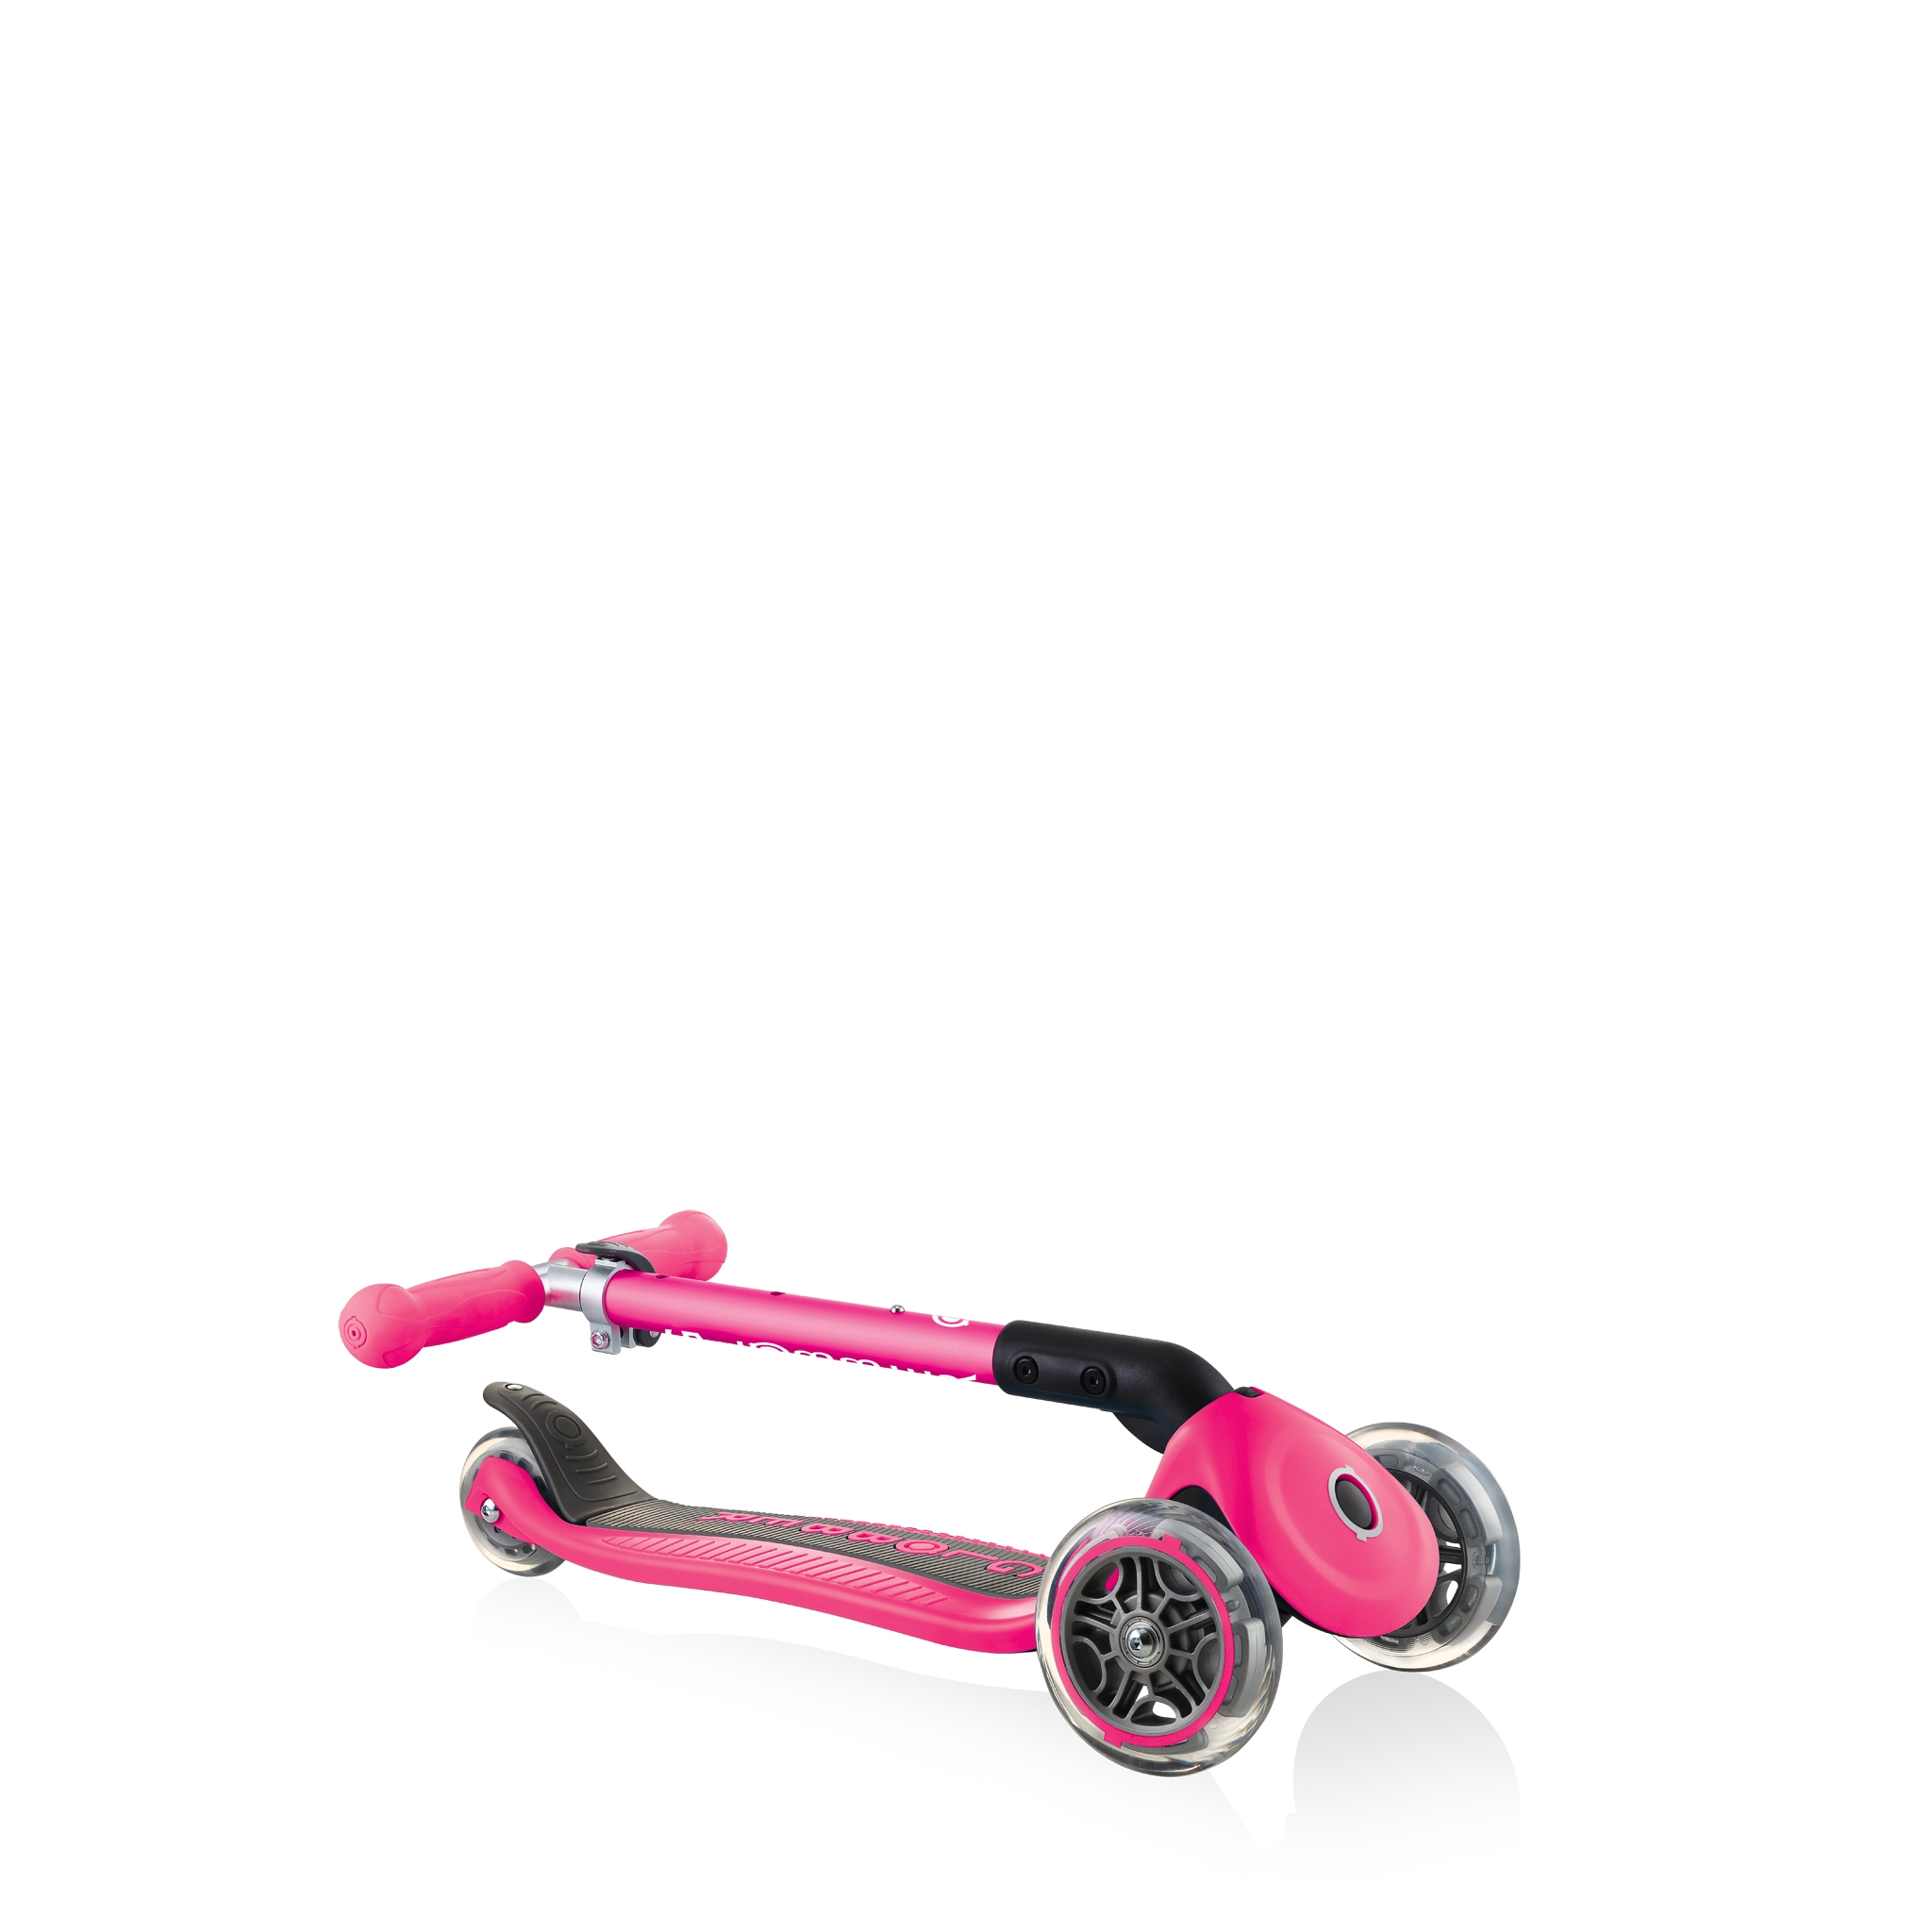 foldable-scooter-for-toddlers-aged-2-and-above-Globber-JUNIOR-FOLDABLE 6